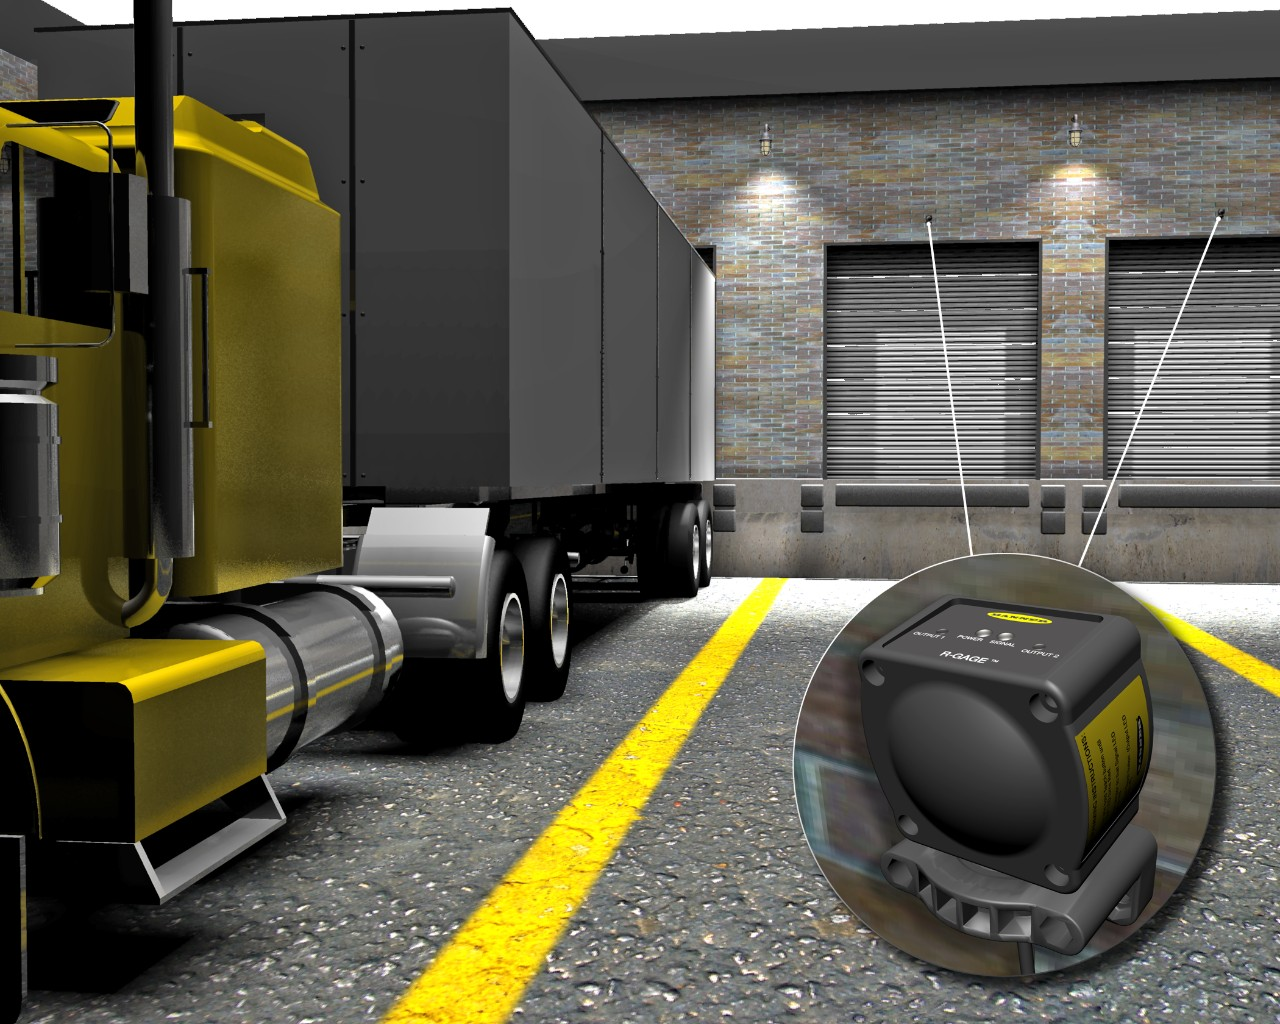 Radar sensor detects large trucks at a loading dock